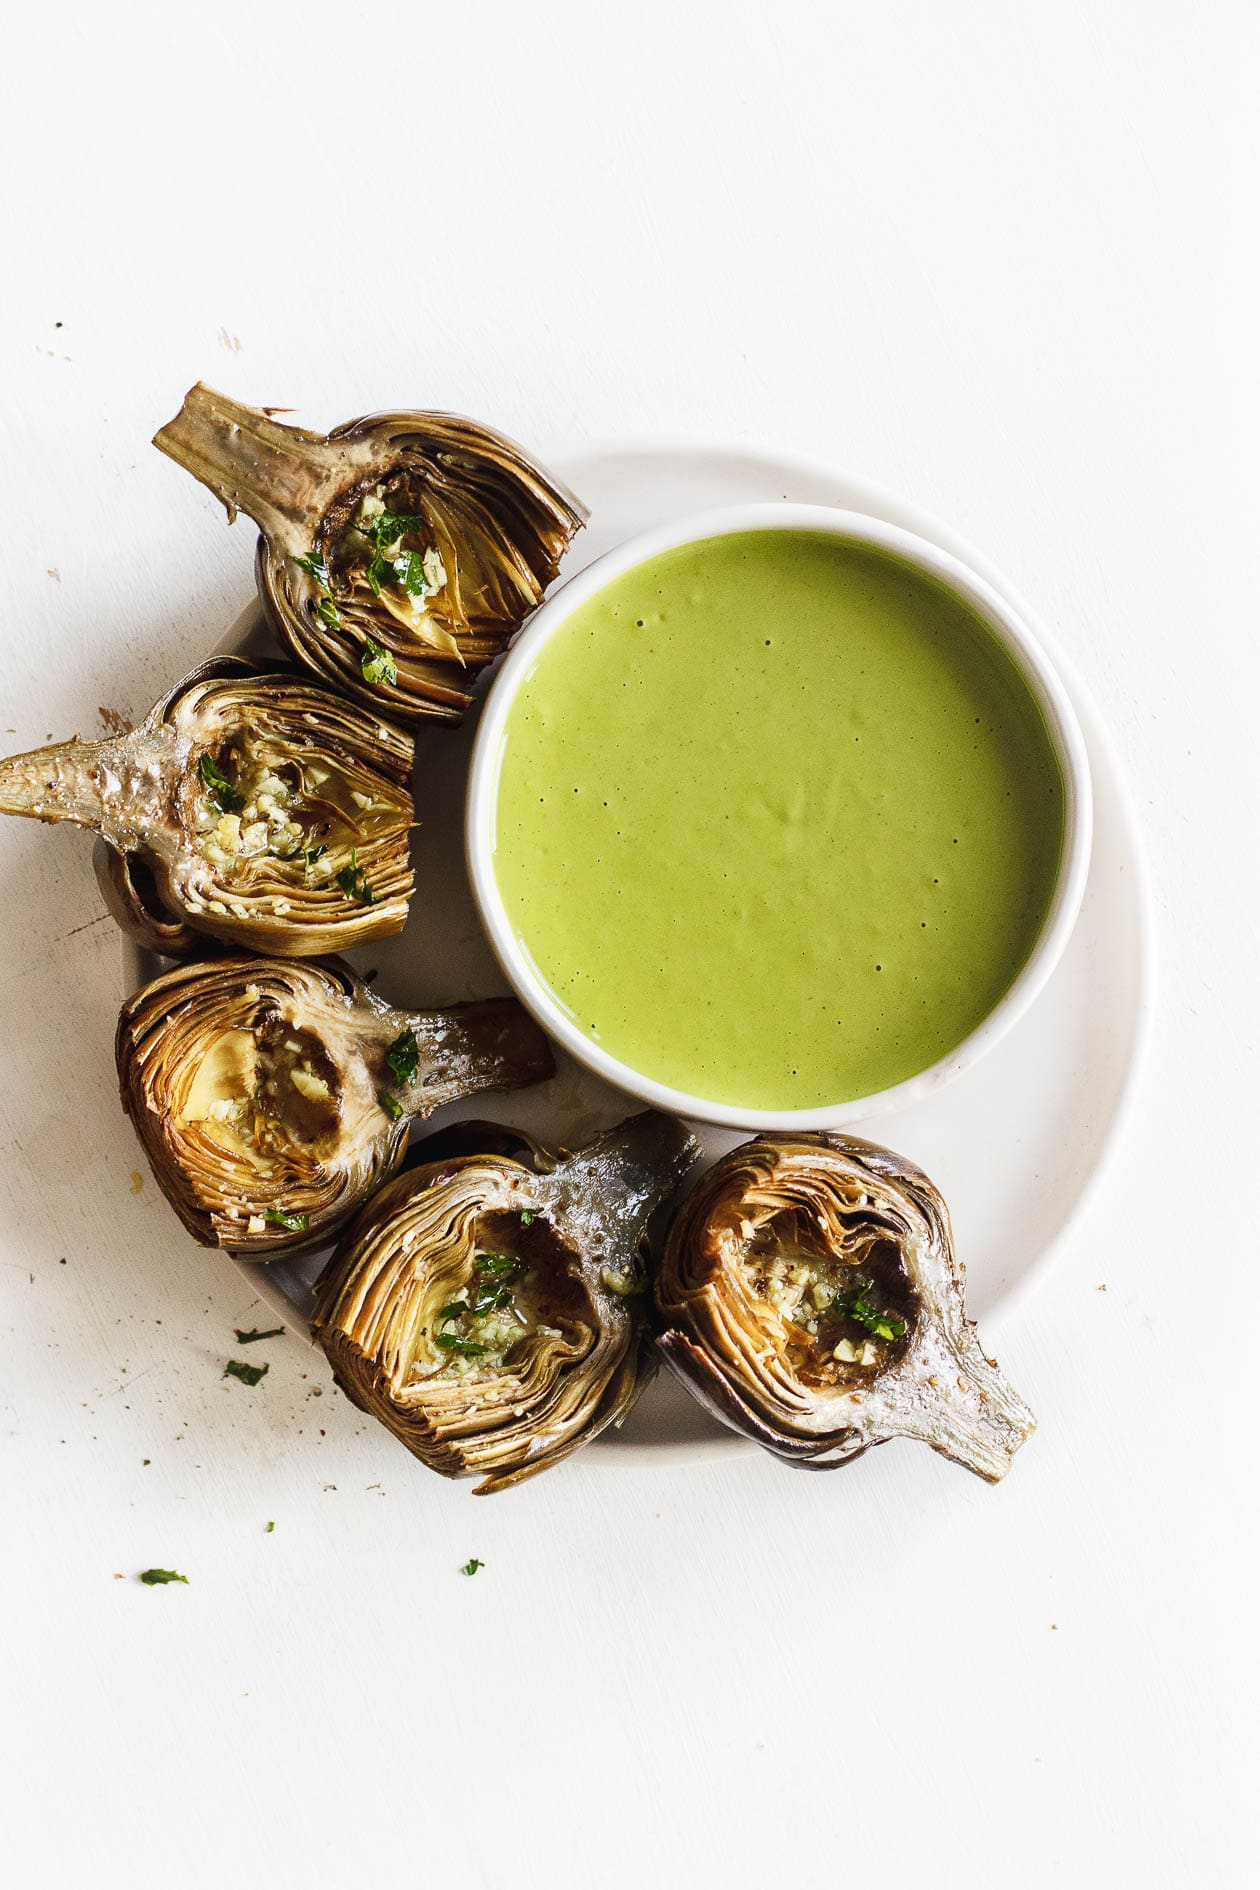 roasted artichokes on a plate with green goddess sauce